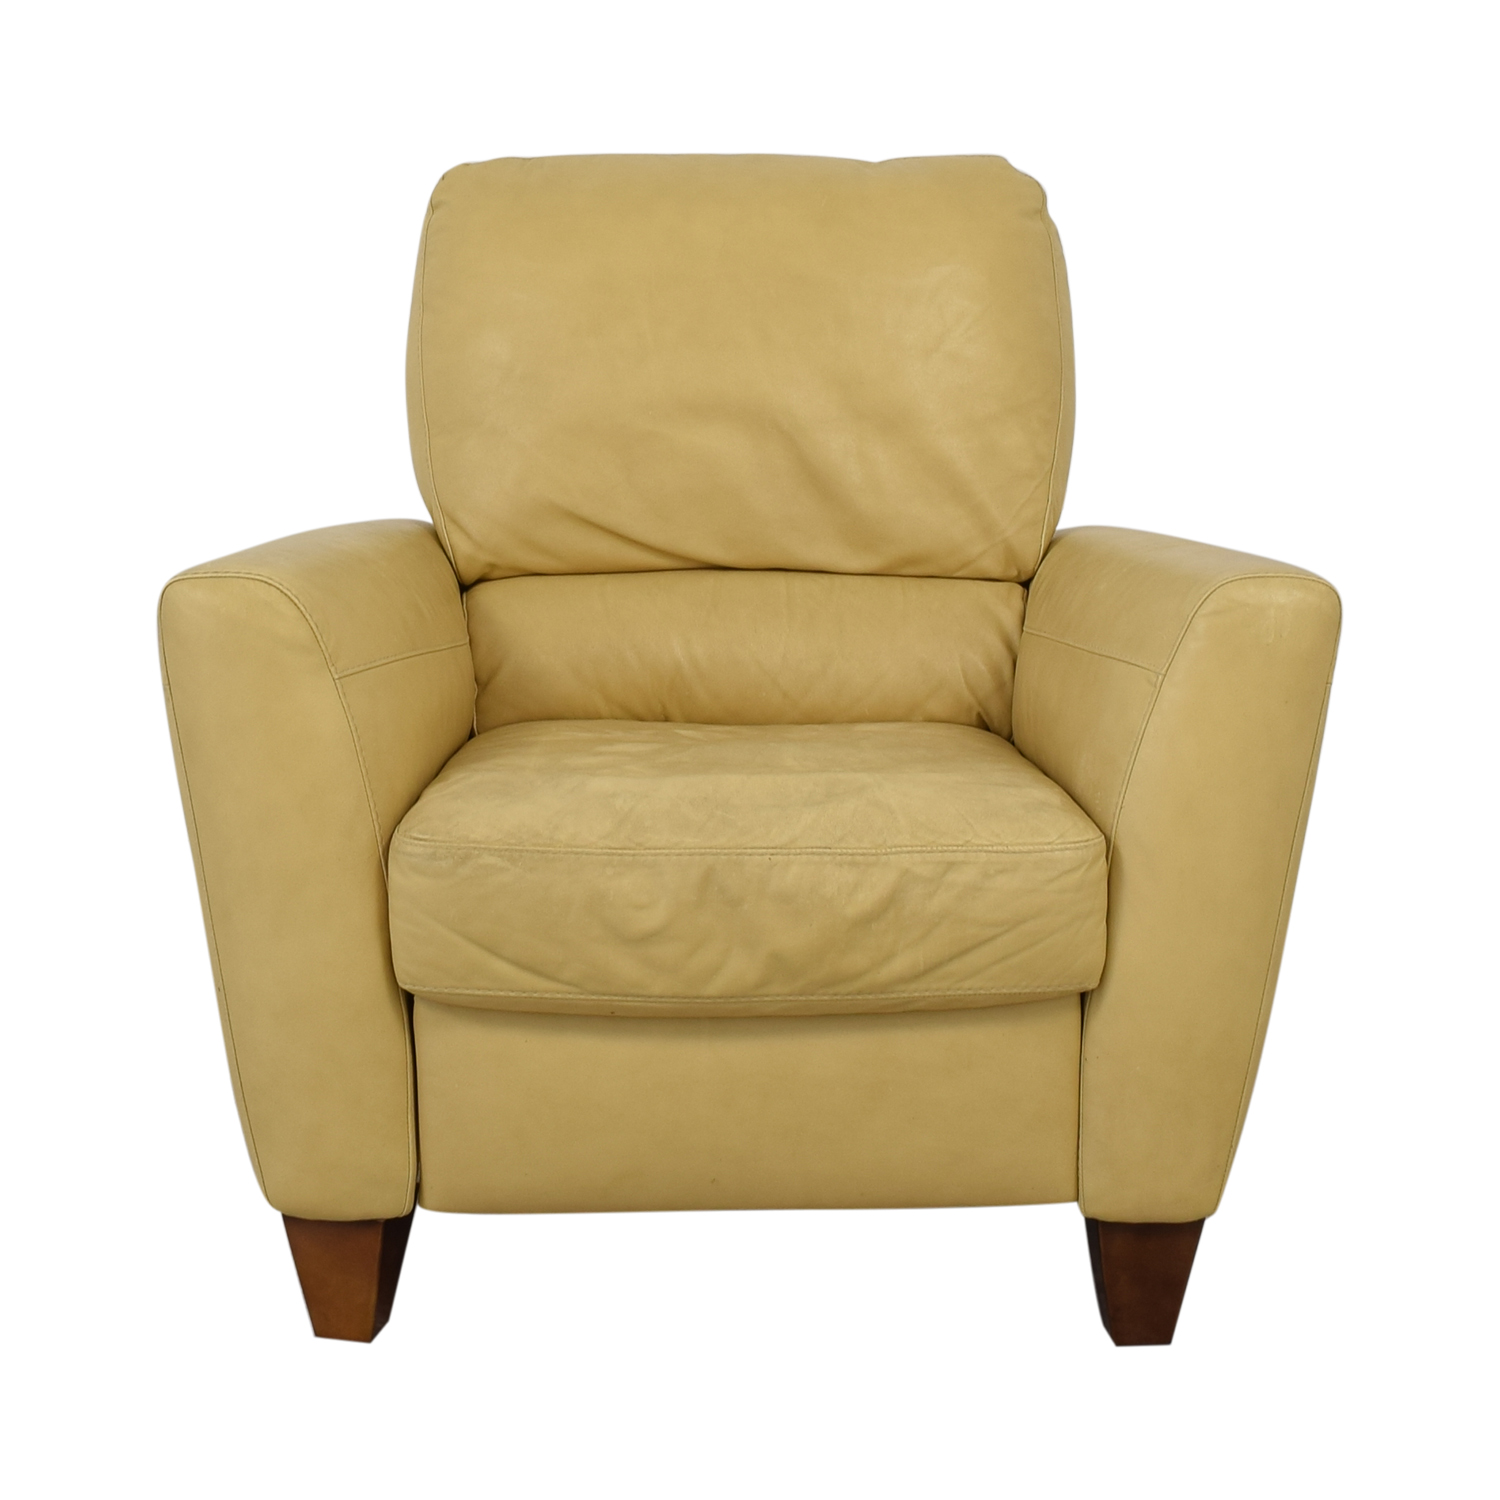 Macy's Mustard Yellow Recliner sale